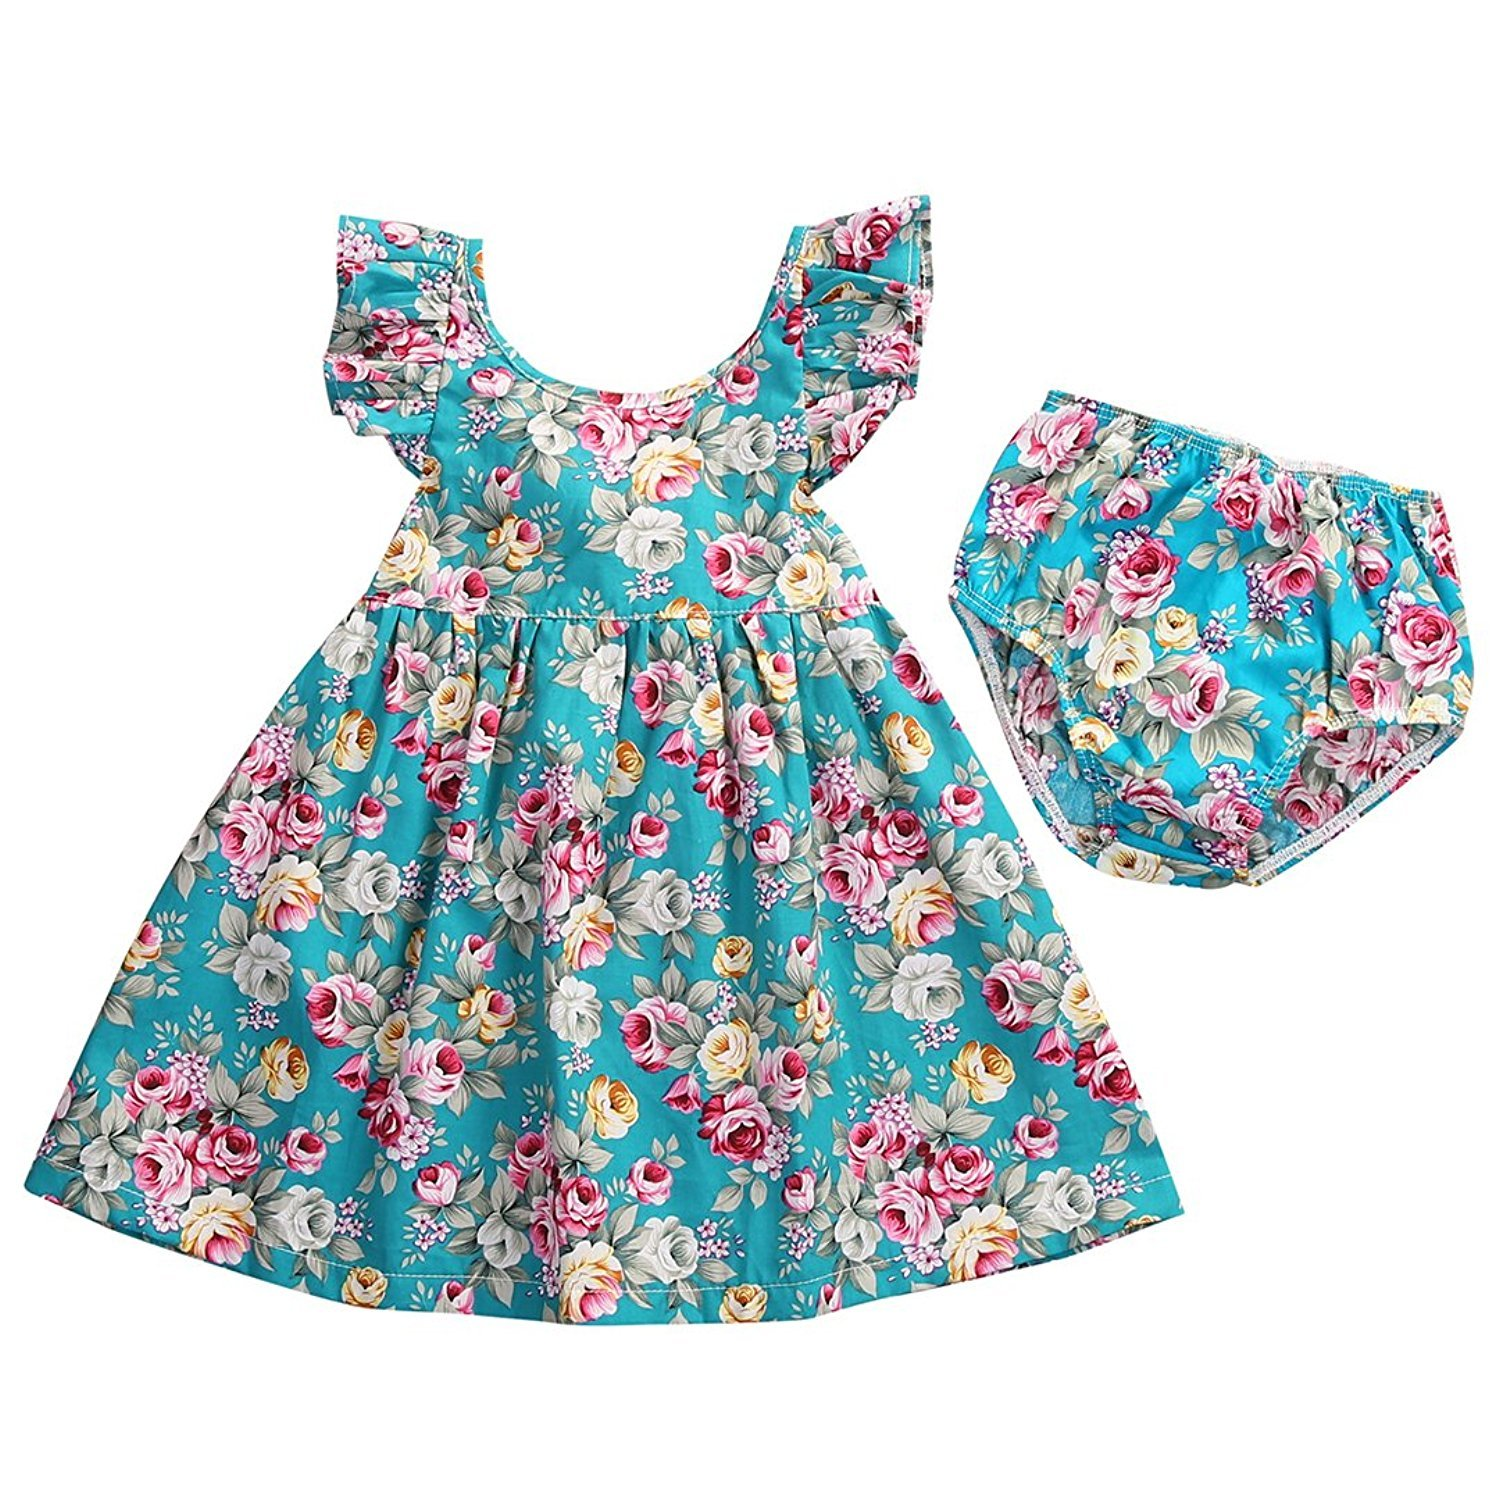 4763f59f 2Pcs Baby Girls Floral Ruffles Dress+Bottoms Skirt Set Summer Crossed  Sleeveless Princess SunsuitAbout the size: 0-6m:Size: Dress  Length:40.5cm/15.9in ...